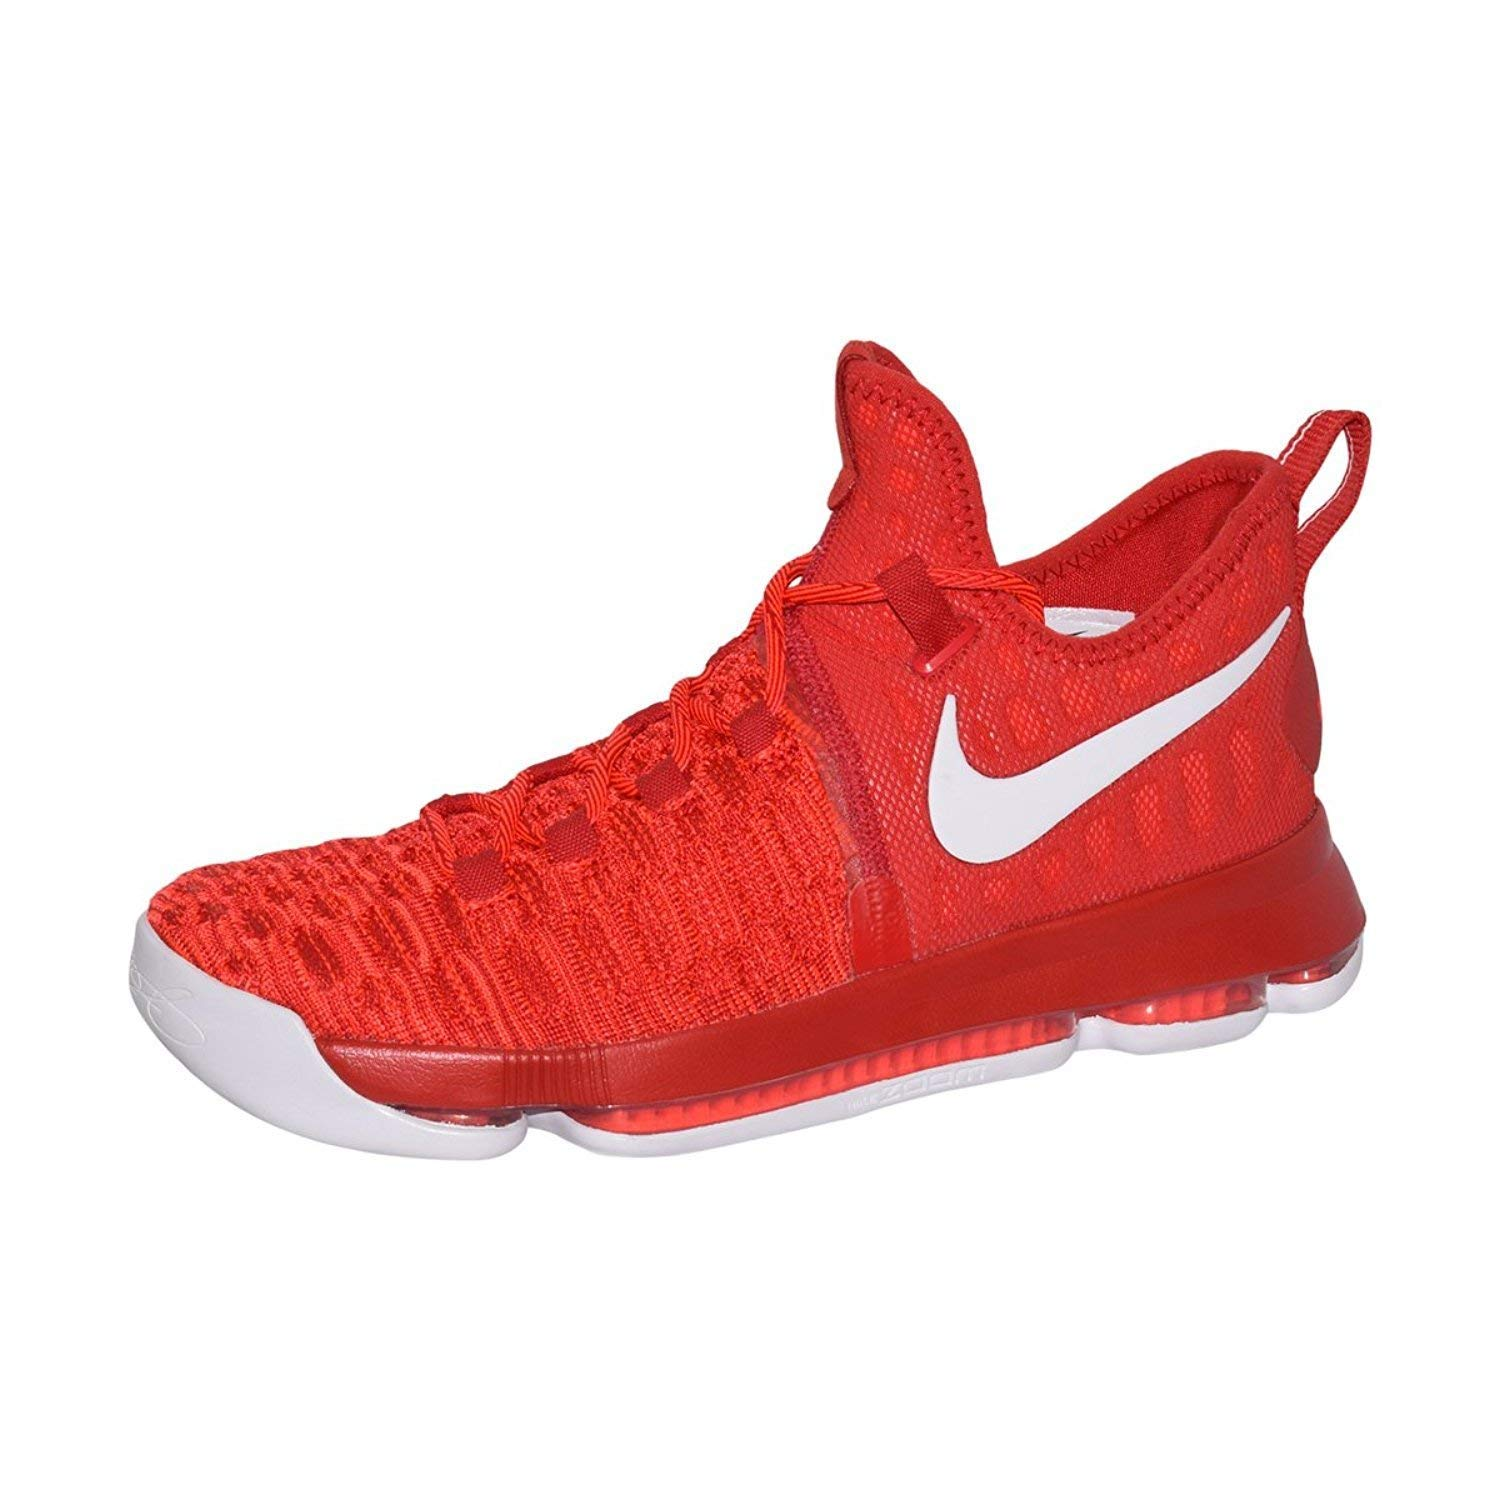 timeless design a0013 14bd6 Nike Zoom KD 9 Men's Basketball Sneaker (10.5 D(M) US, University Red/White)